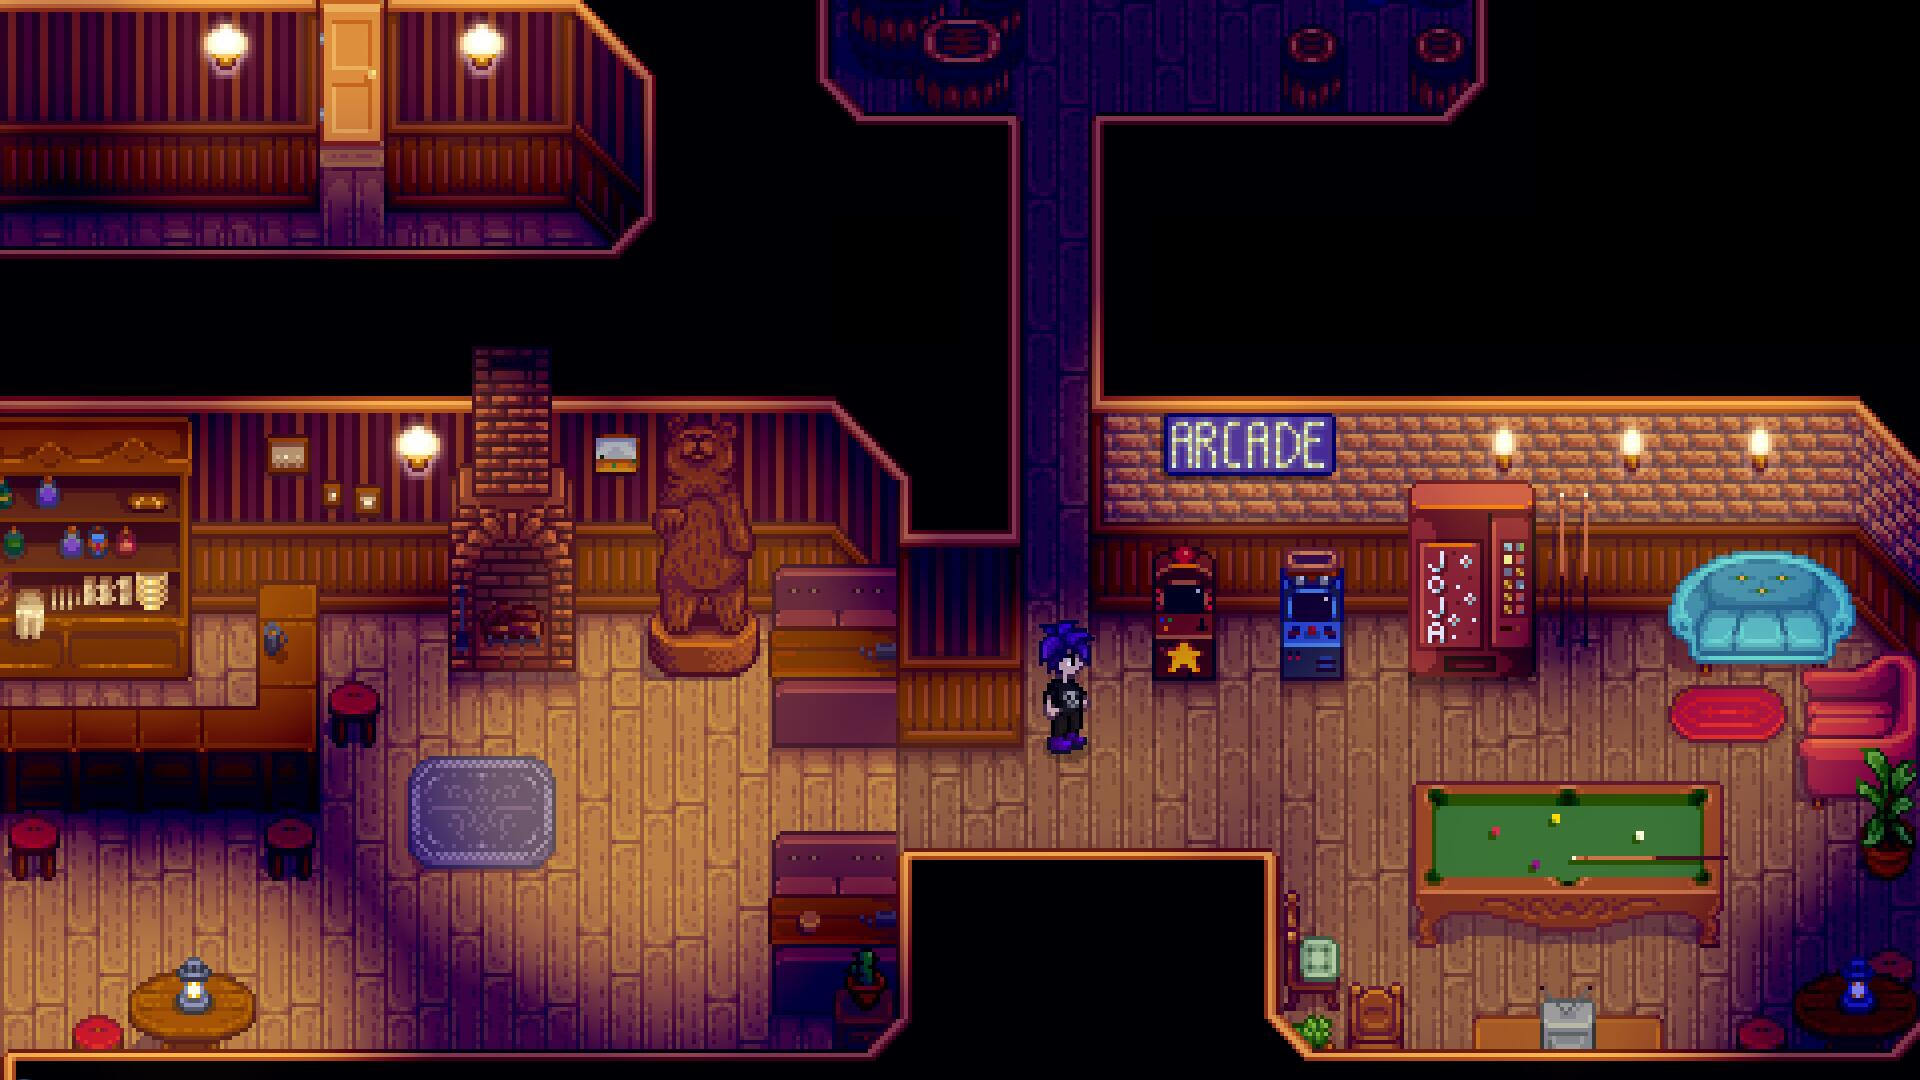 Stardew Valley Marriage Guide - Gift Guide, Who Can You Romance in Stardew Valley?